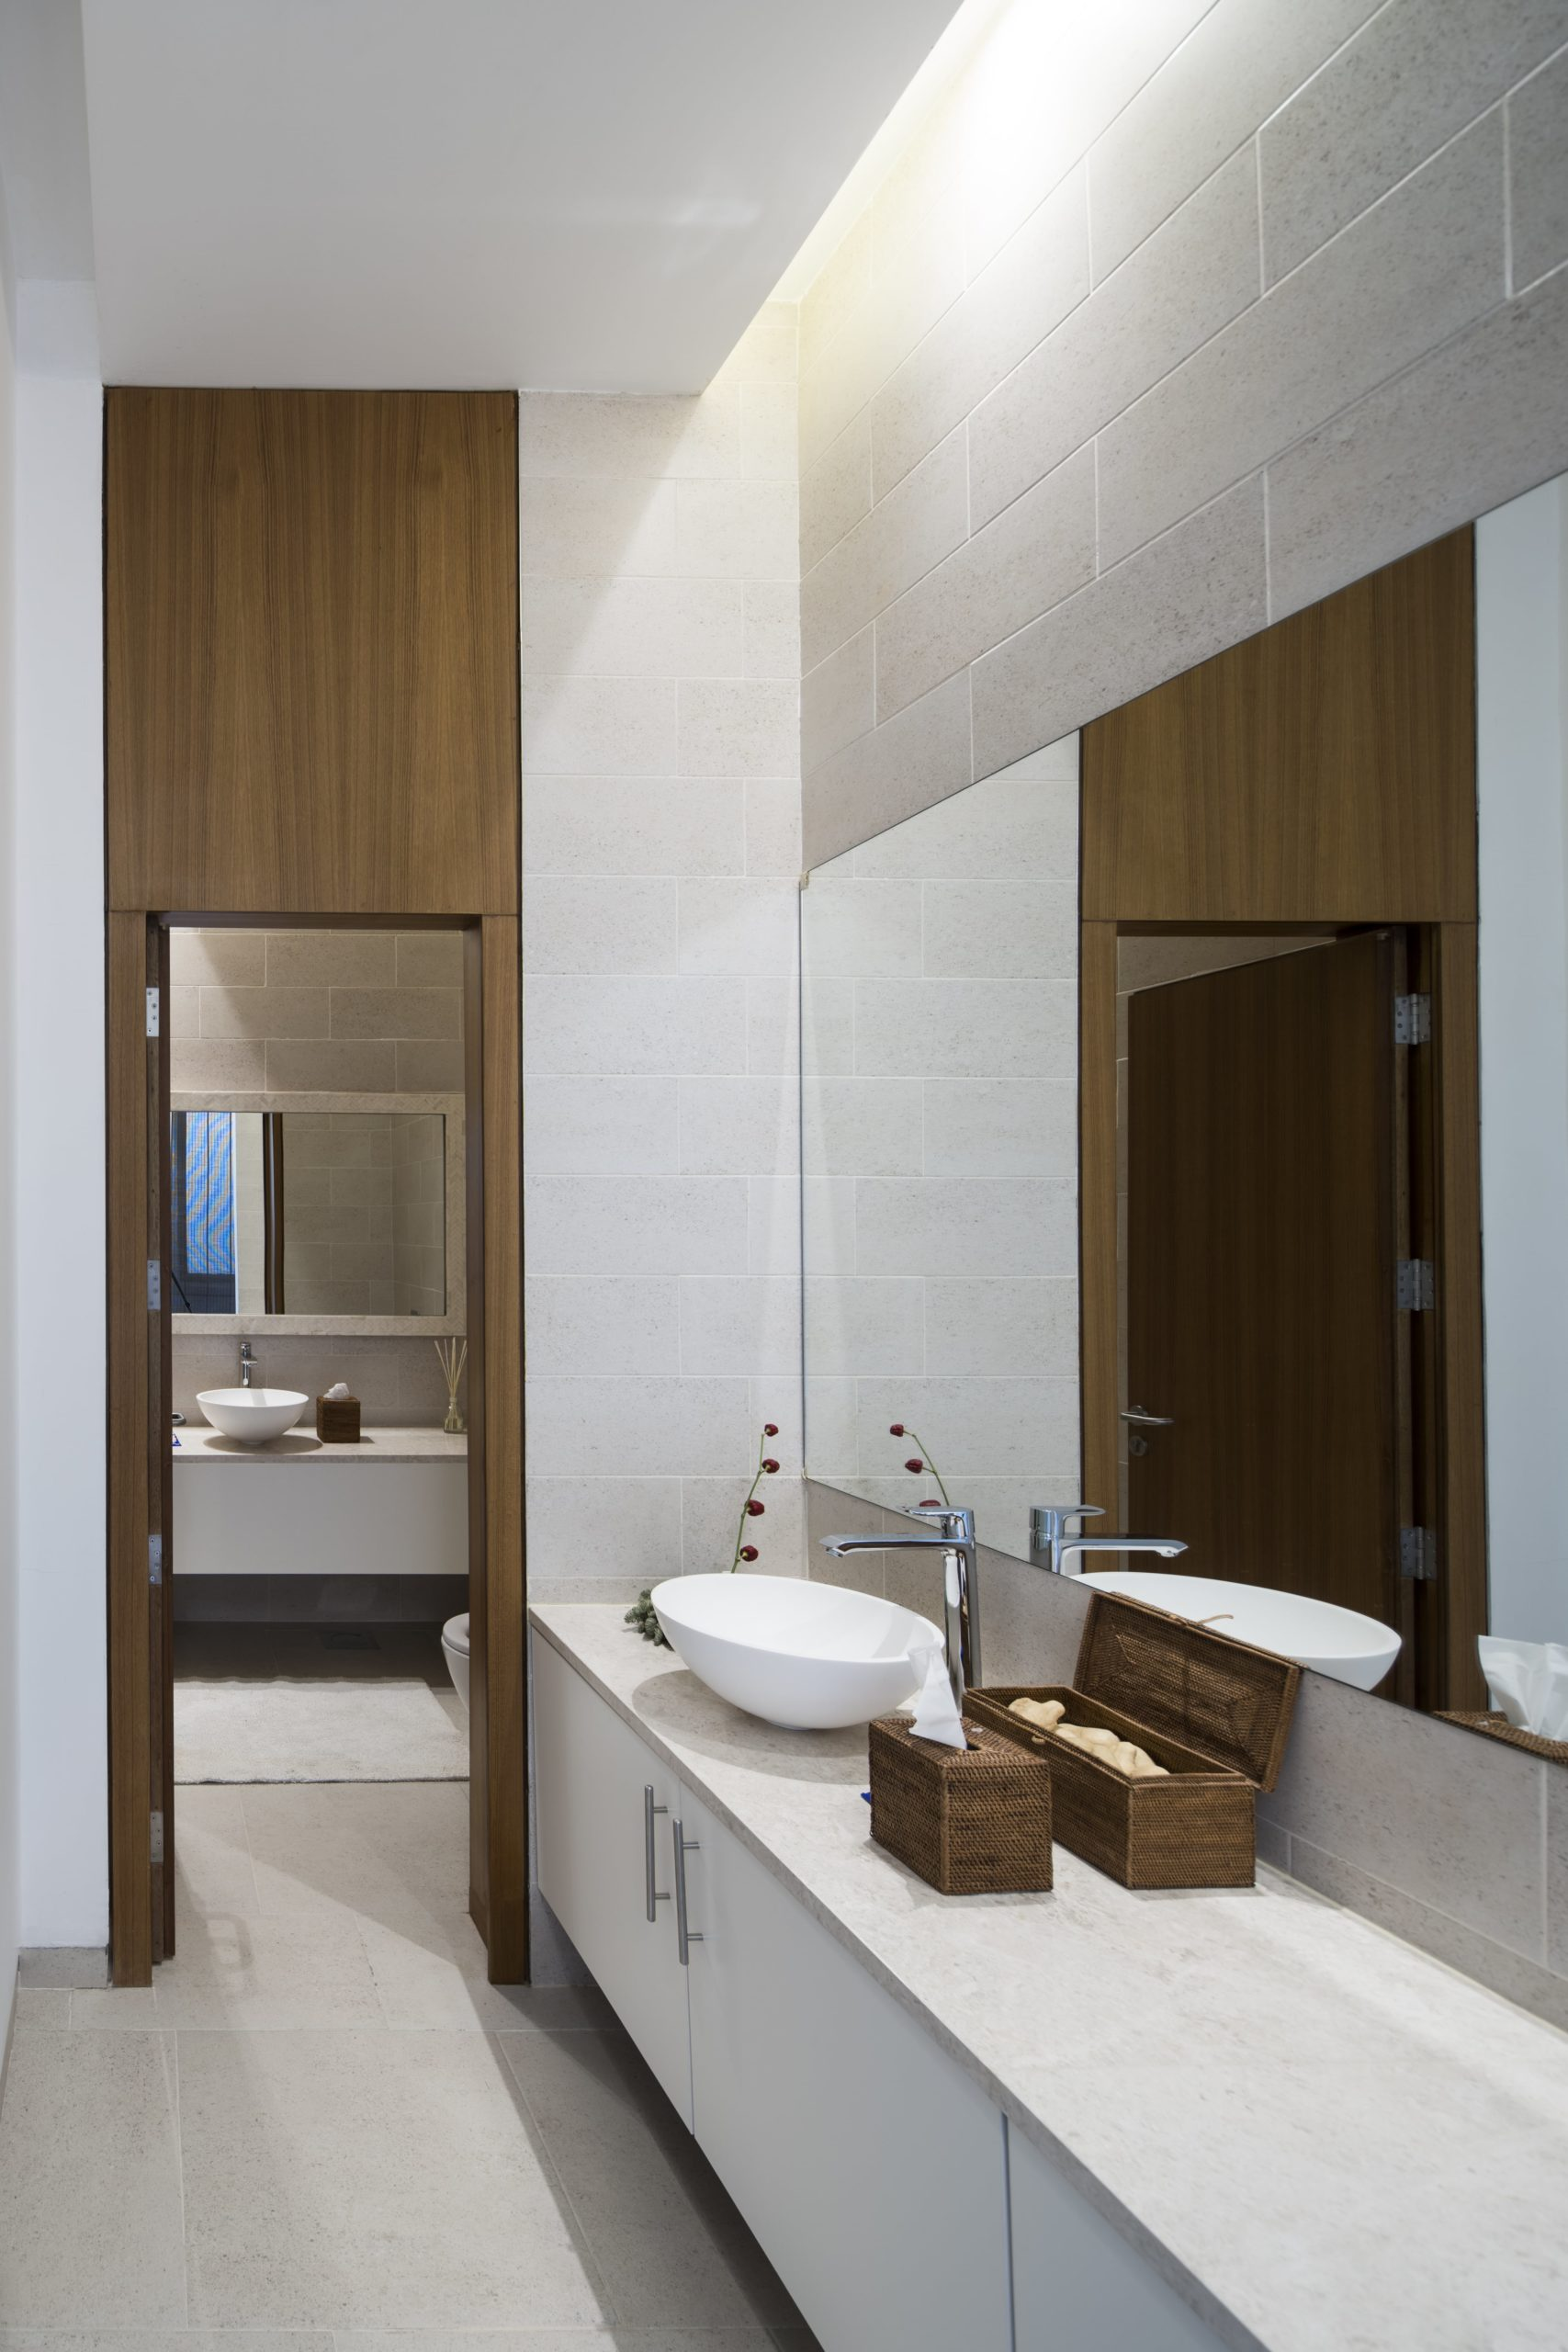 The bathroom has a large vanity topped with a modern wall-mounted frameless mirror.